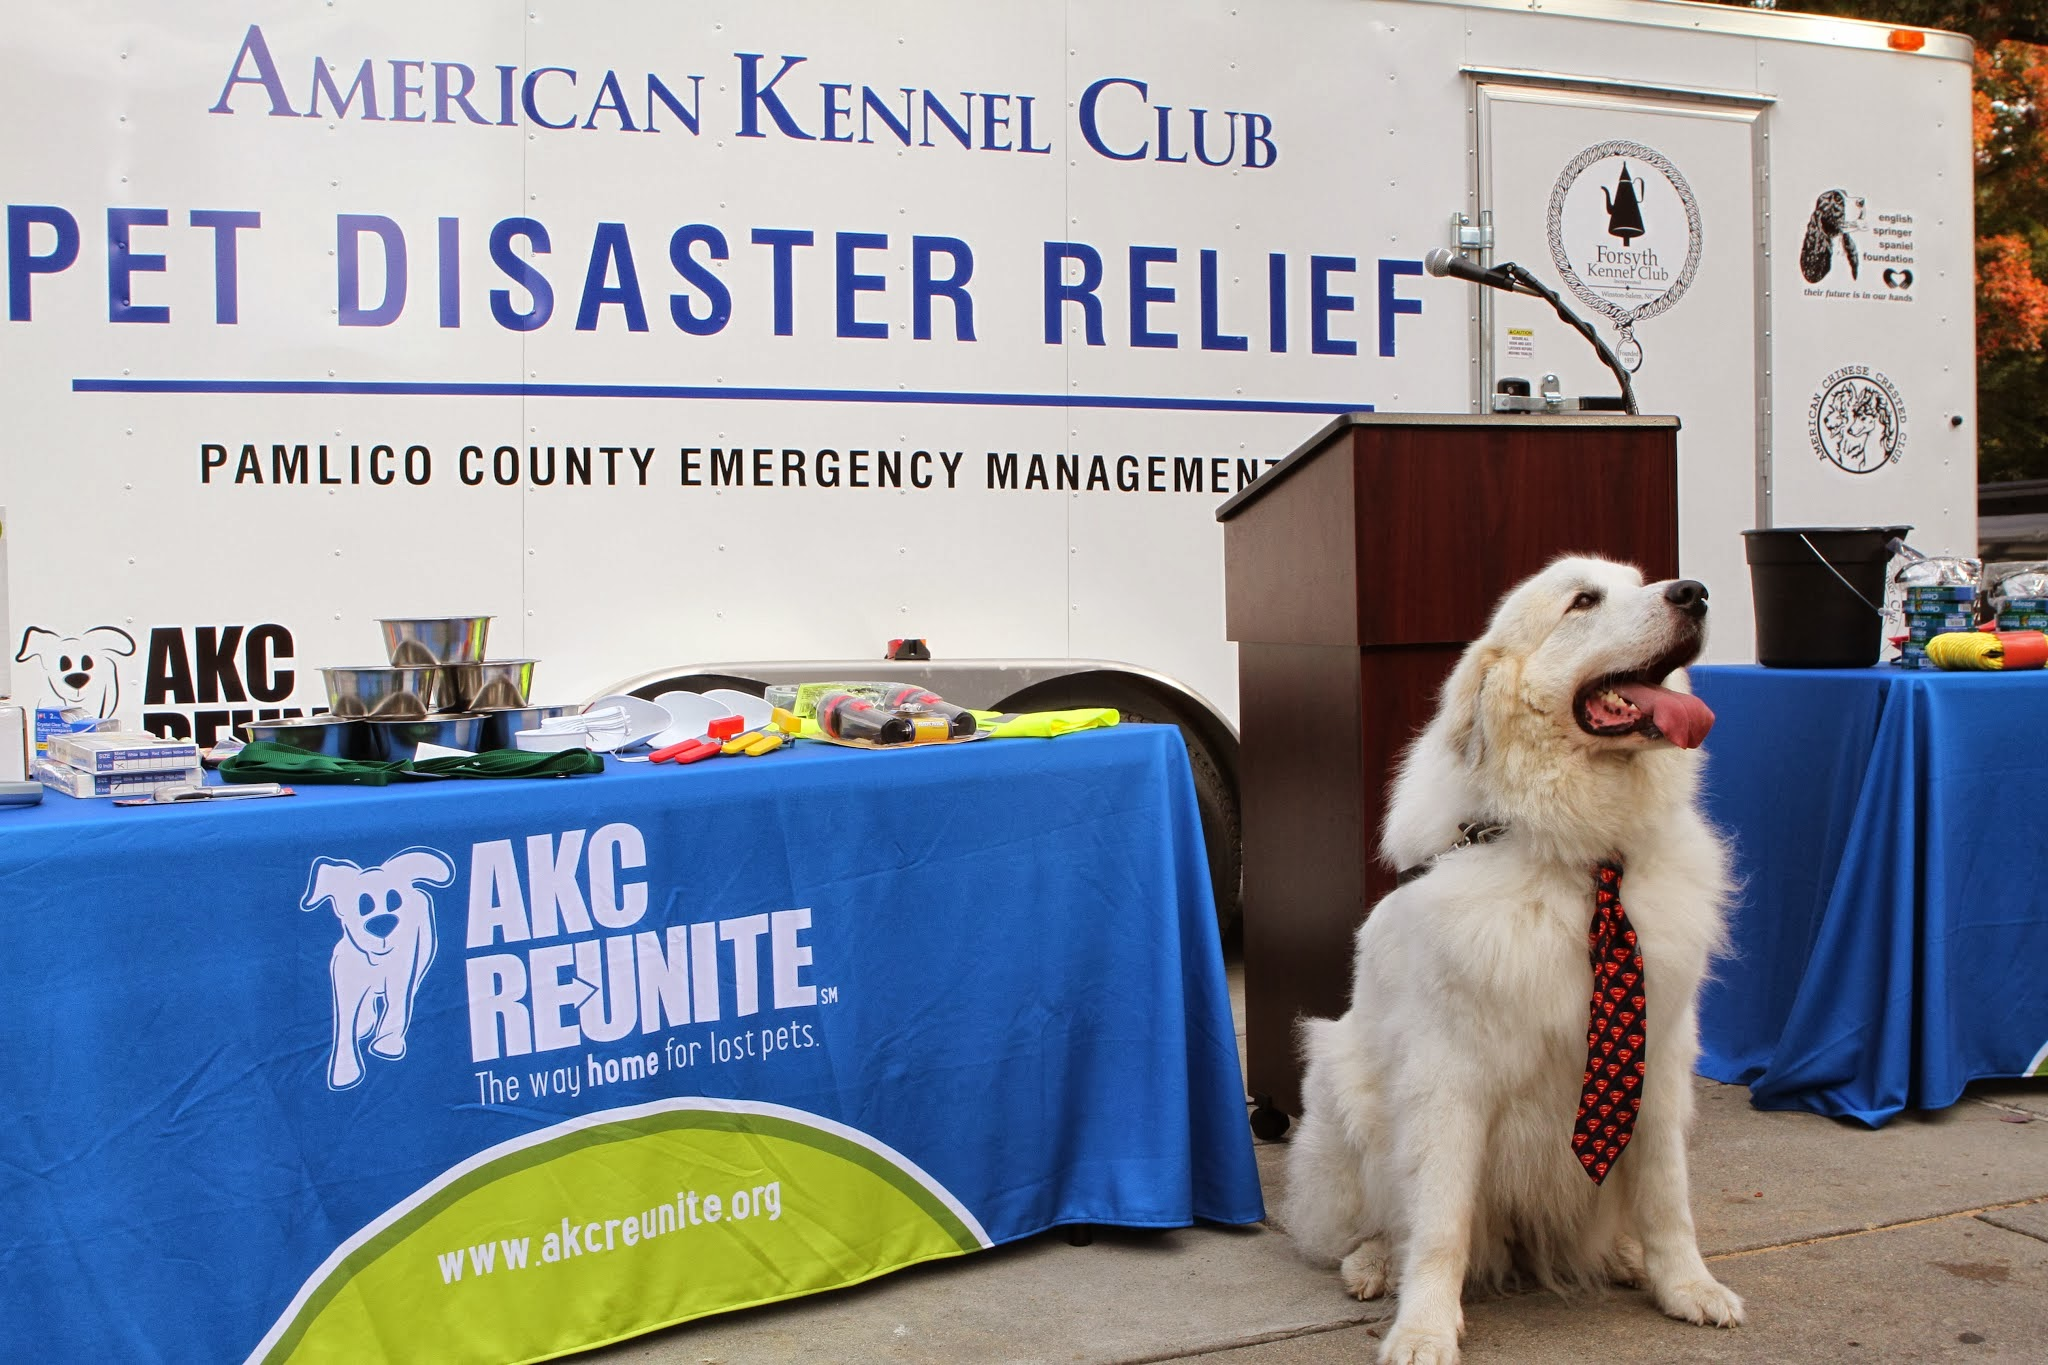 AKC Pet Disaster Relief Trailer with Vern